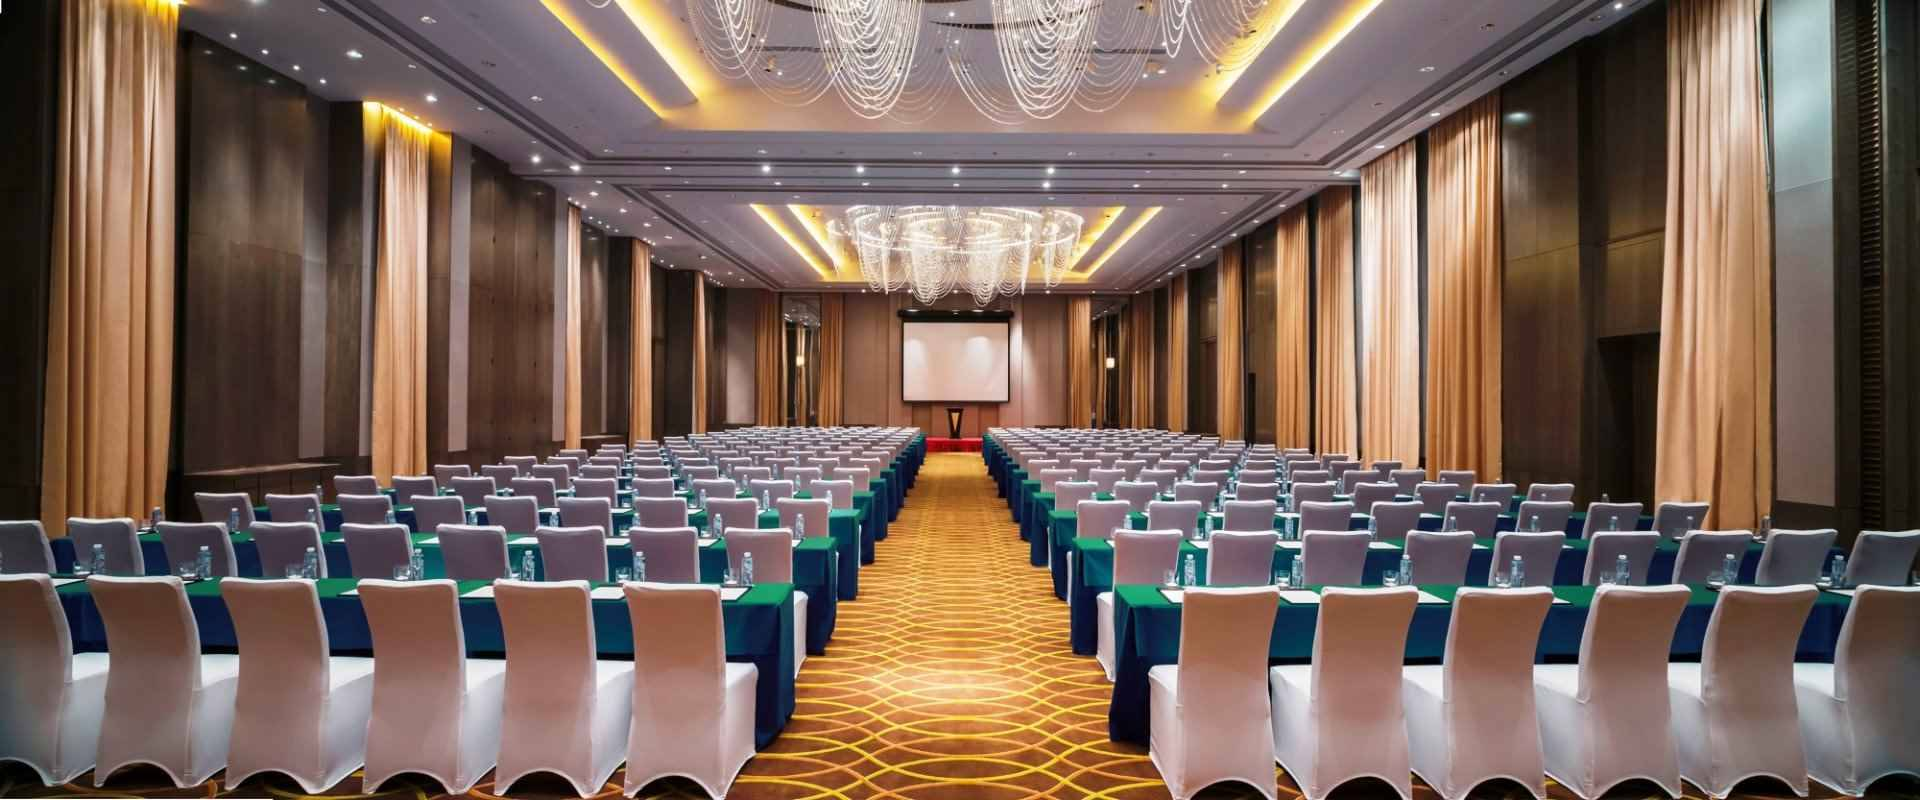 Room for any event to shine